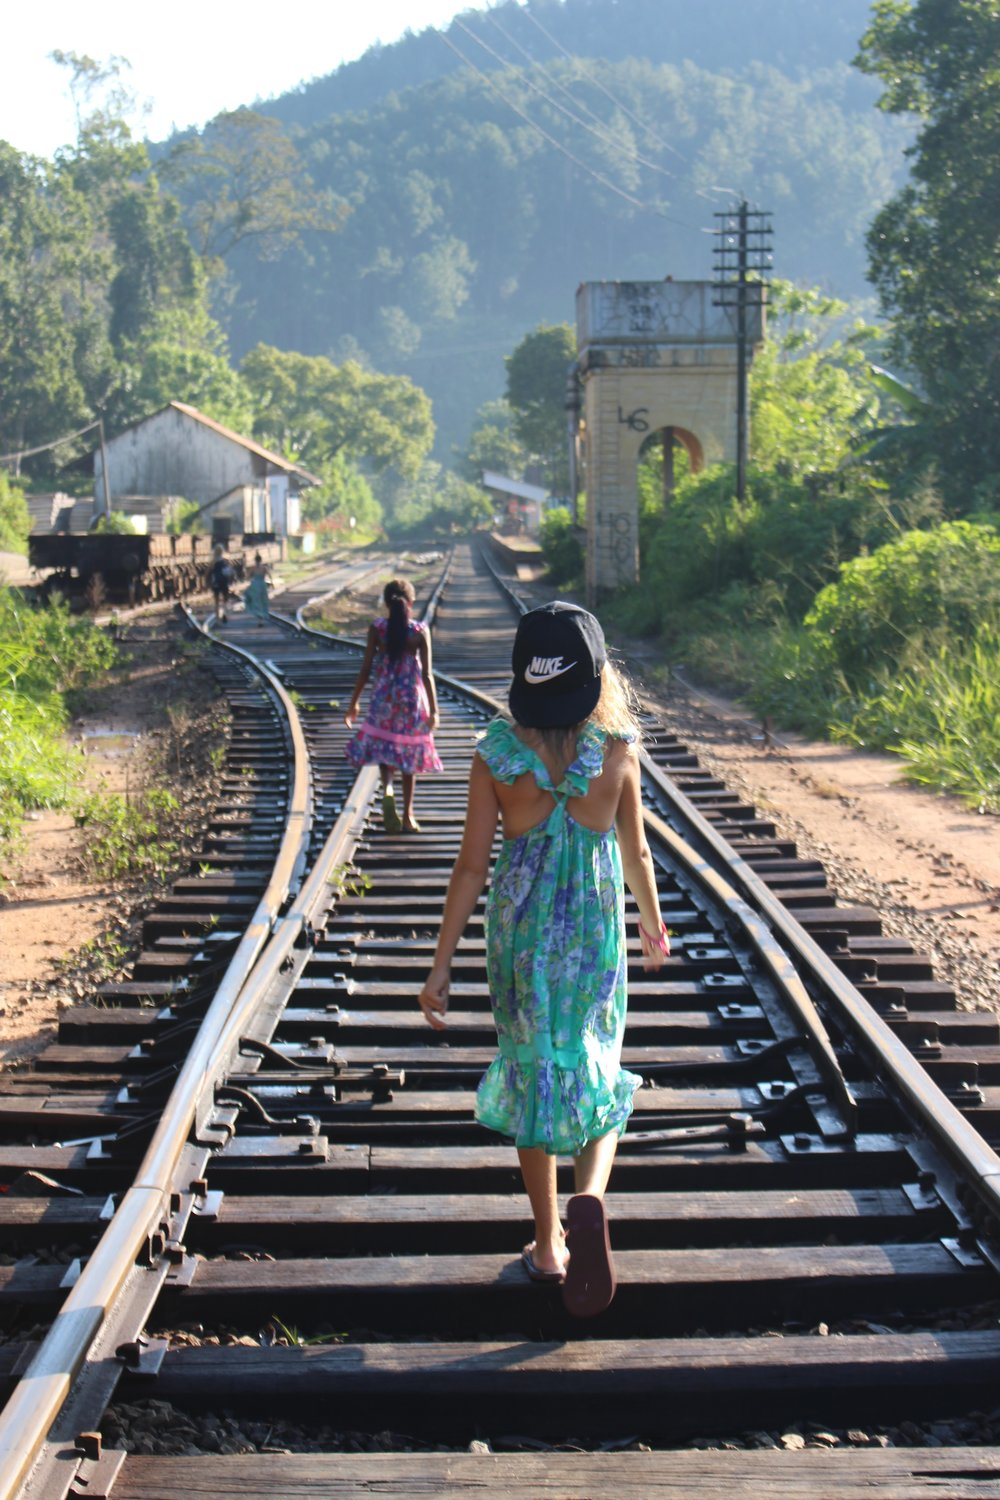 Morning walk to the iconic 9 Arches Bridge using the train tracks in Ella, Sri Lanka. The beautiful hill country, full of lush tea plantations, was so much fun to explore by foot and train. Not many in the fashion industry can pull of a beautiful dress and backwards athletic hat like Shae can! This journey has made us all stronger, closer and wiser, and opened our creative minds  more than we could have ever imagined, style included.